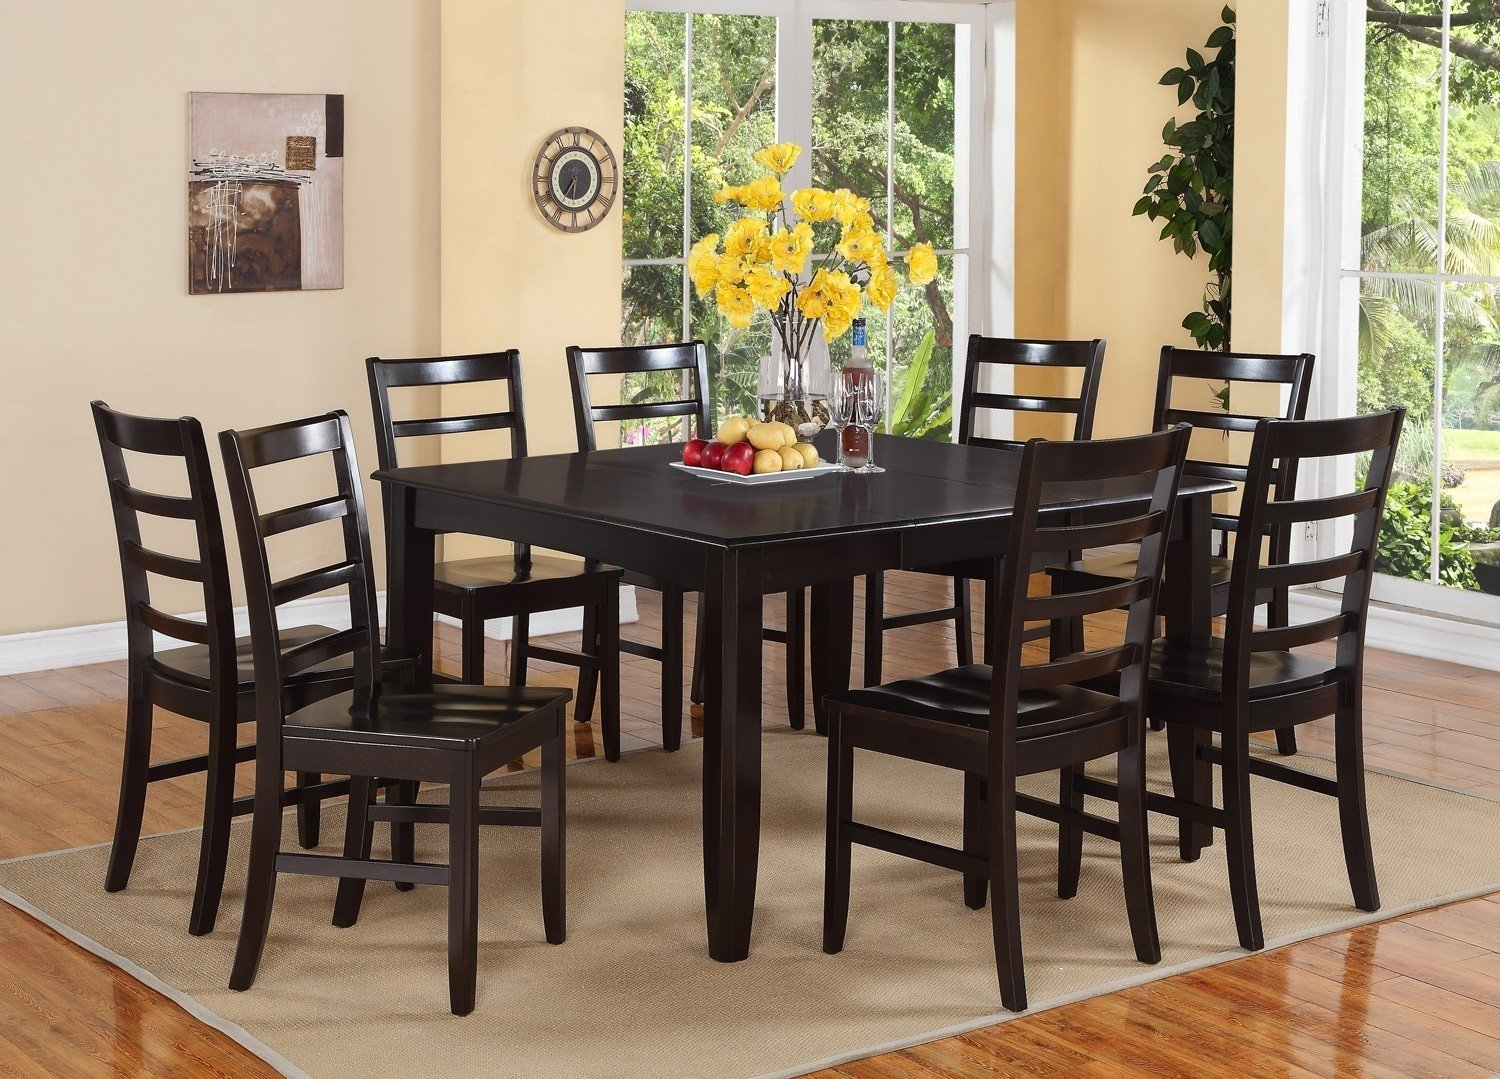 10 Stunning Everyday Kitchen Table Centerpiece Ideas dining table centerpiece ideas for everyday surripui 2020